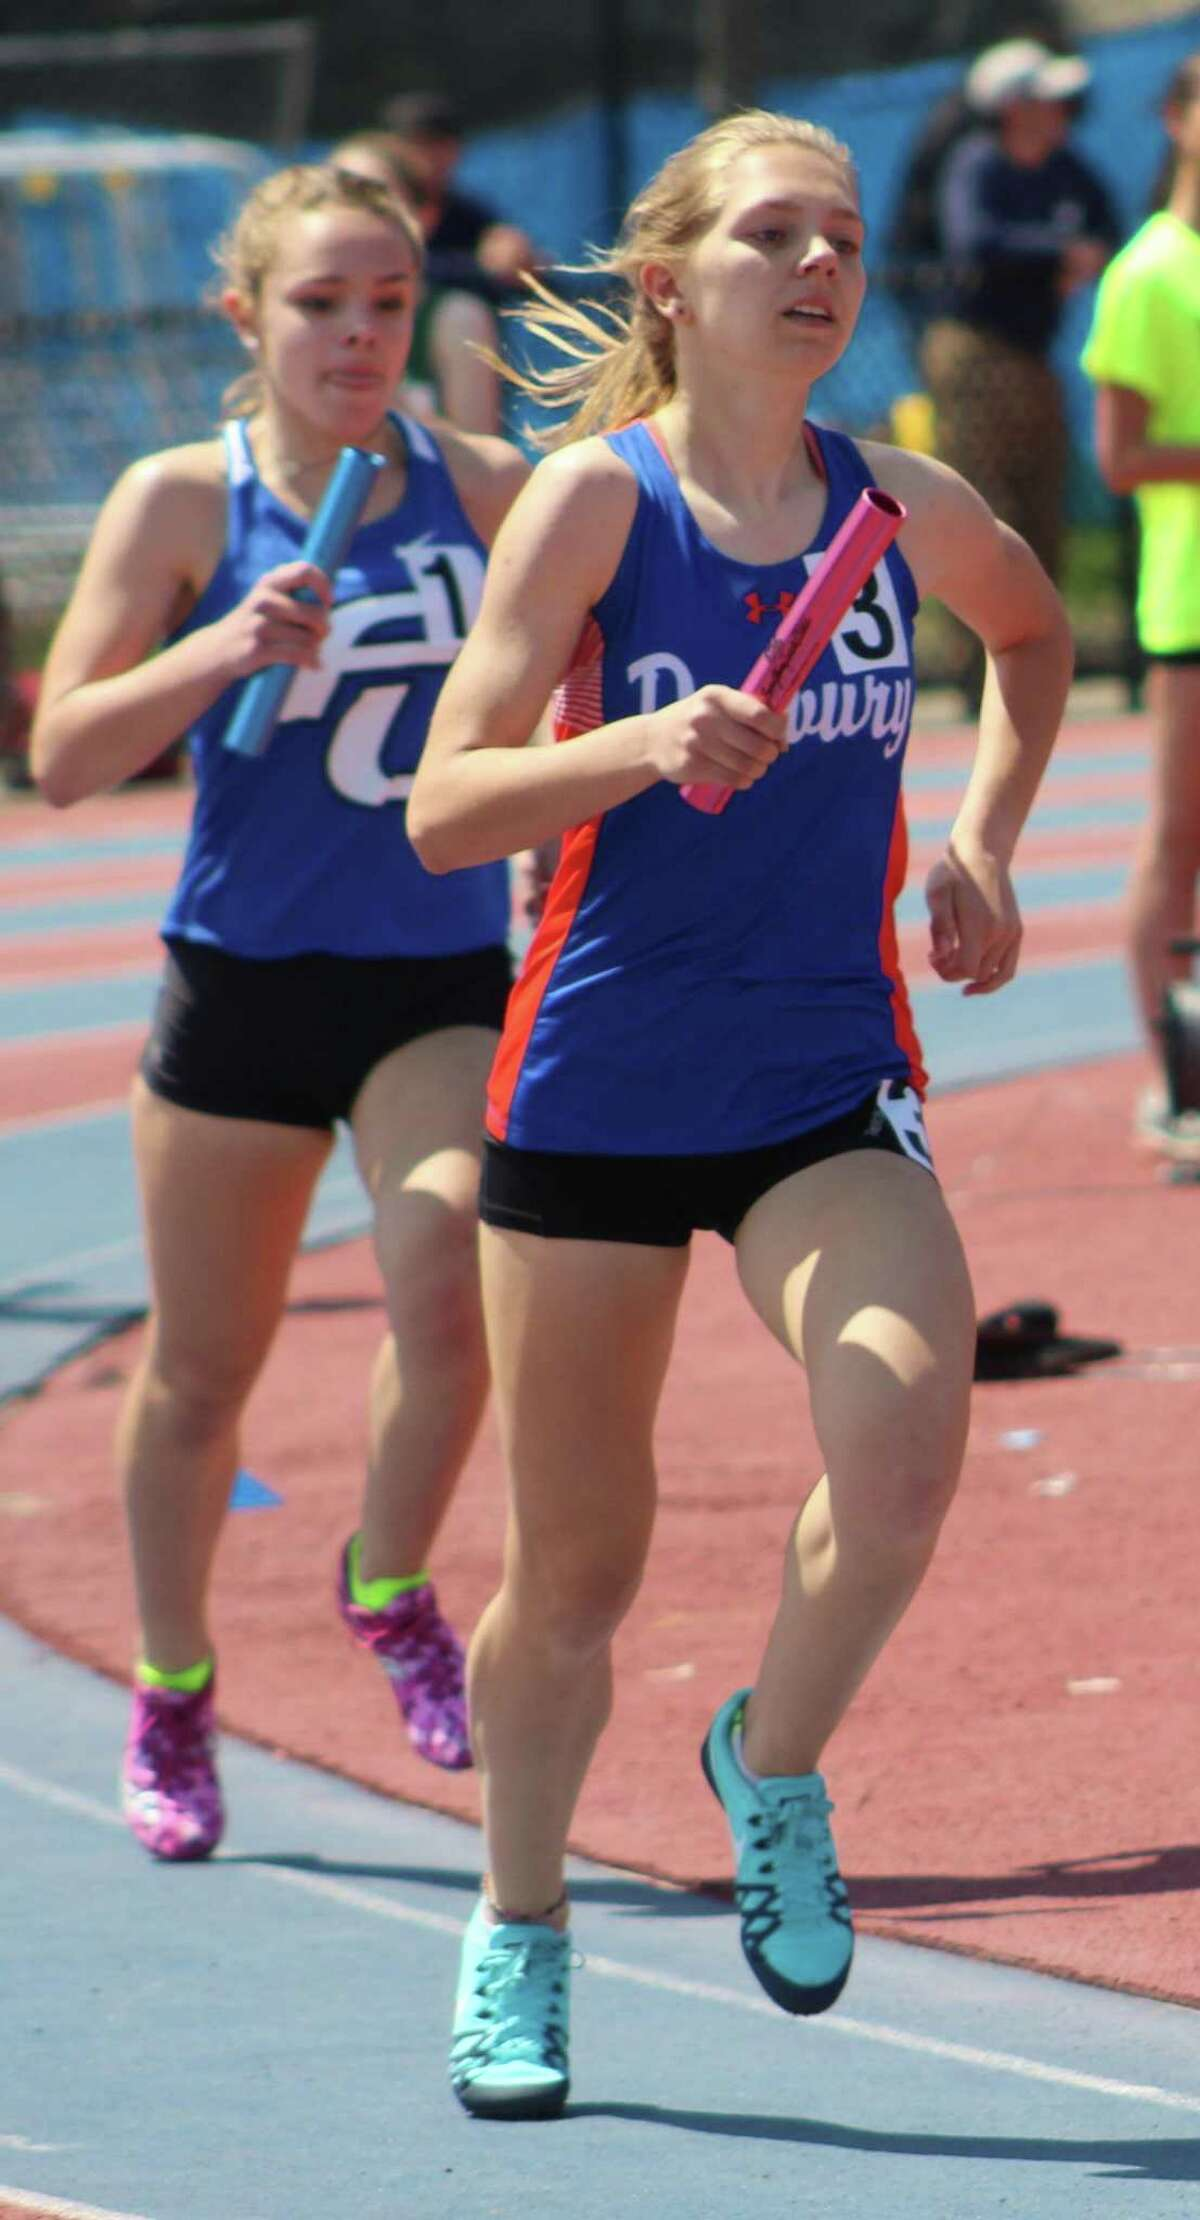 Danbury's Leah Sarkisian competes in the girls 4x800 relay at the O'Grady Relays at Danbury High School April 28, 2018.